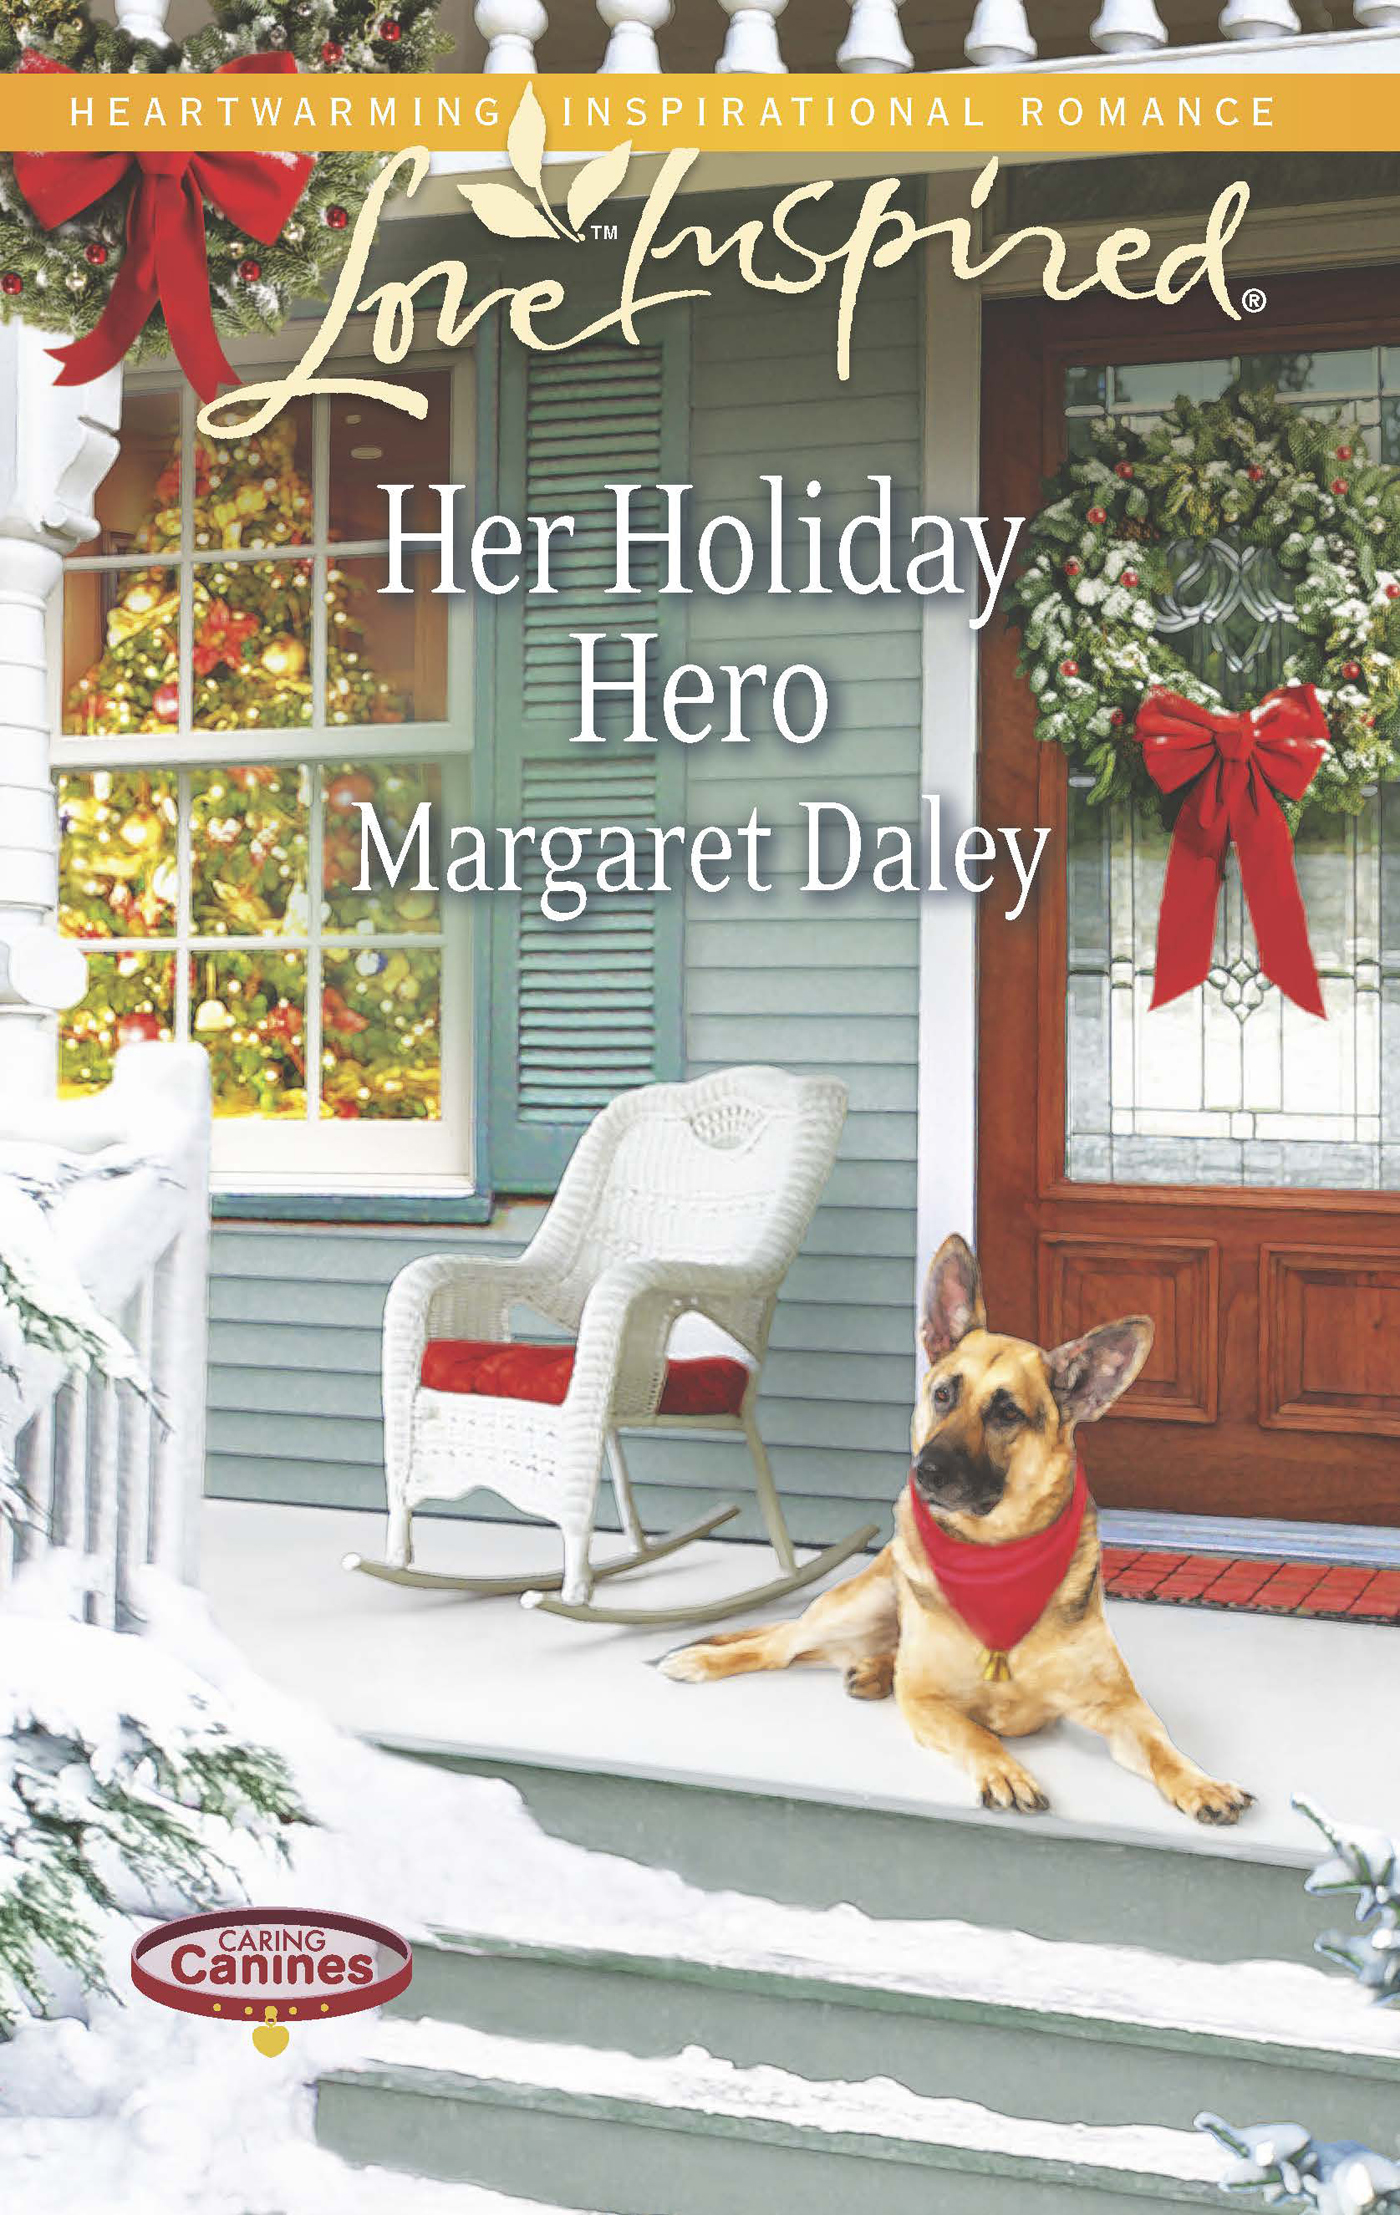 Her Holiday Hero (Mills & Boon Love Inspired) (Caring Canines - Book 2)